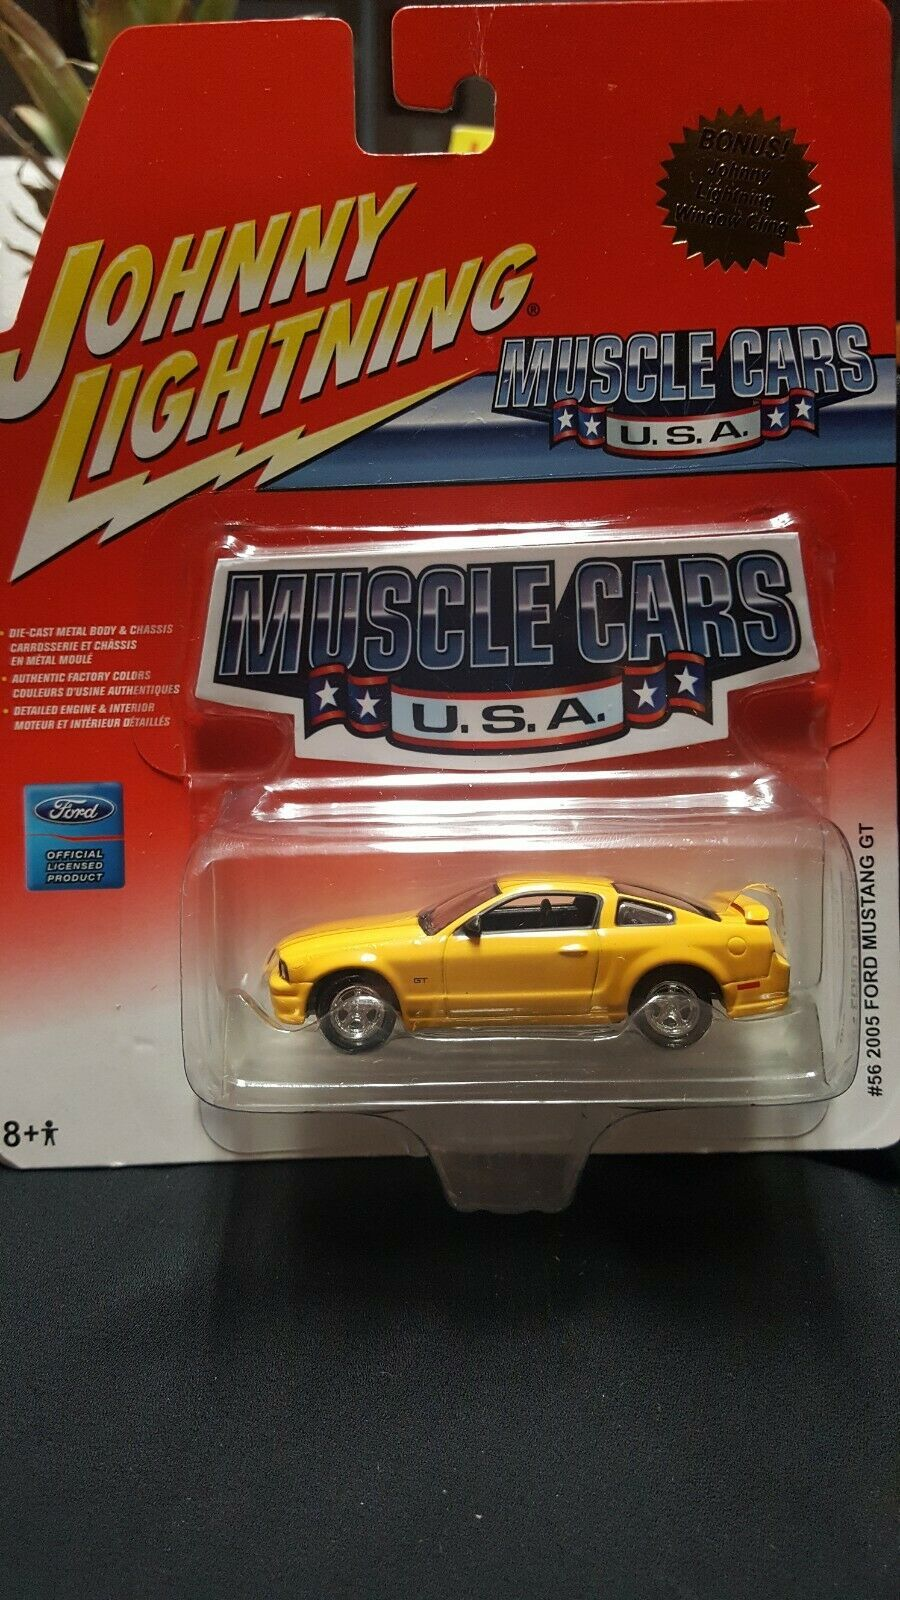 2006 Johnny Lightning 56 2005 Ford Mustang Gt Item 50151 In 2020 With Images Ford Mustang Gt Mustang Gt 2005 Ford Mustang